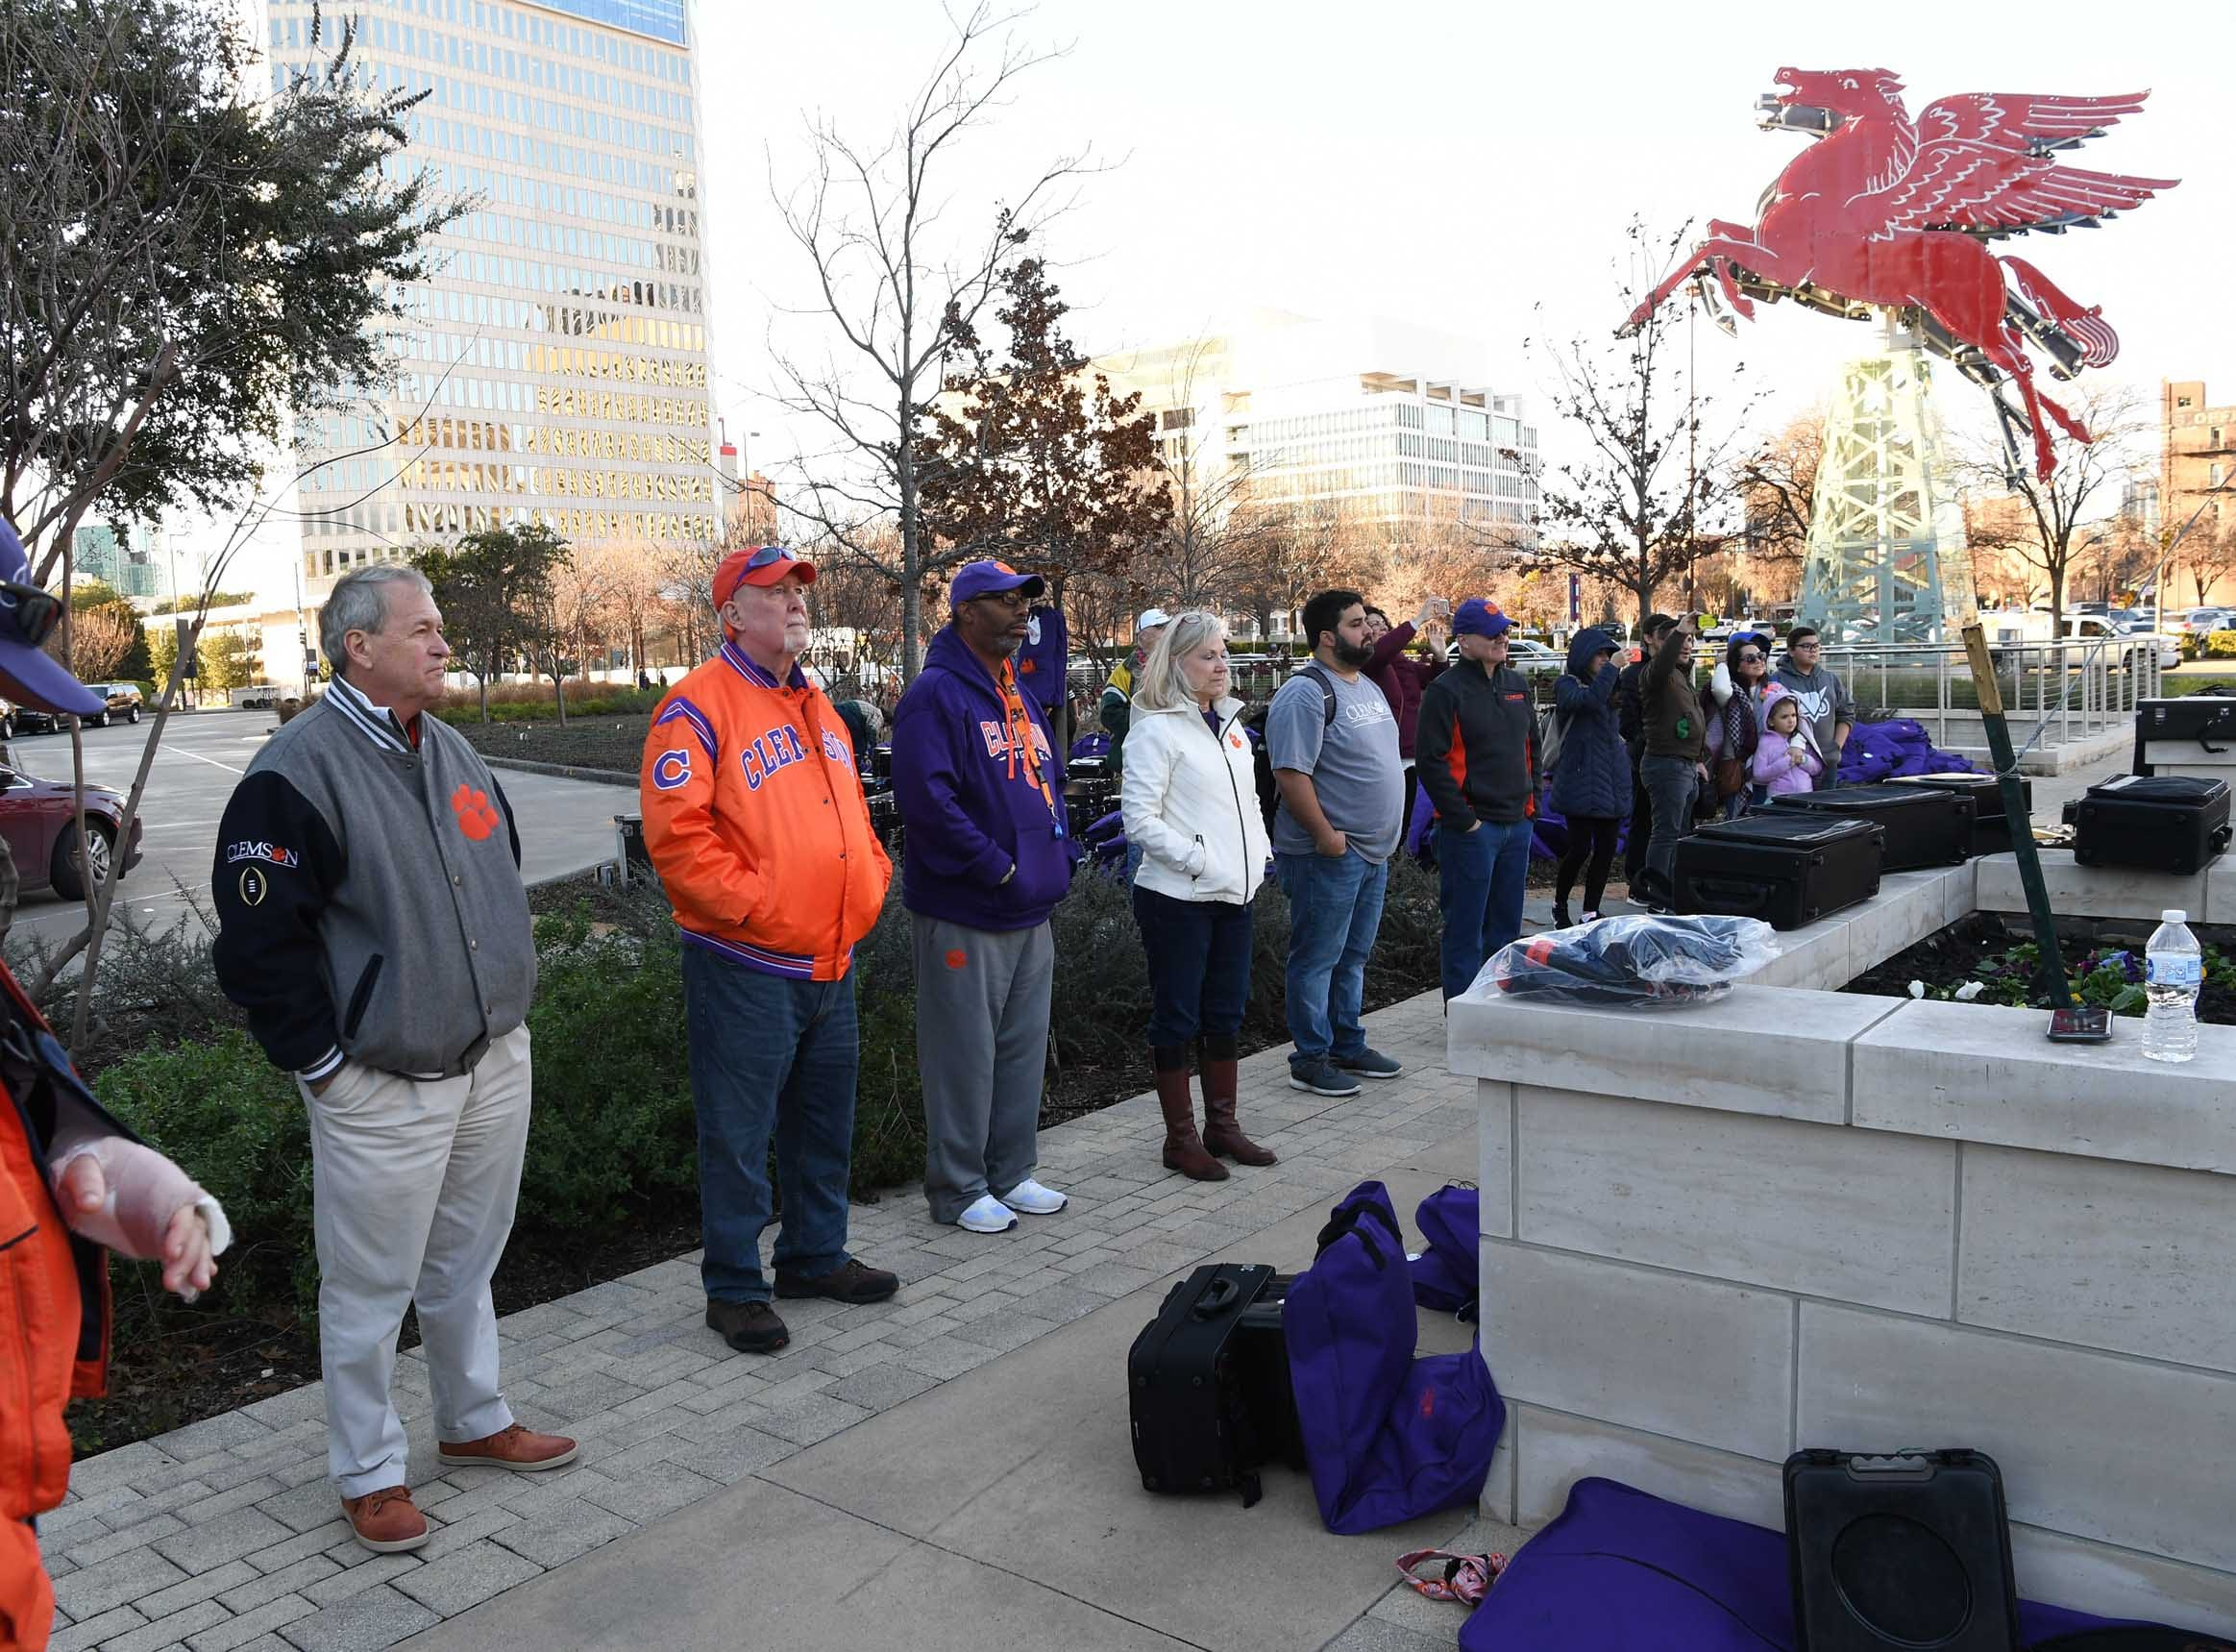 Clemson fans watch during Clemson Band practice outside the Omni in Dallas December 27, 2018.